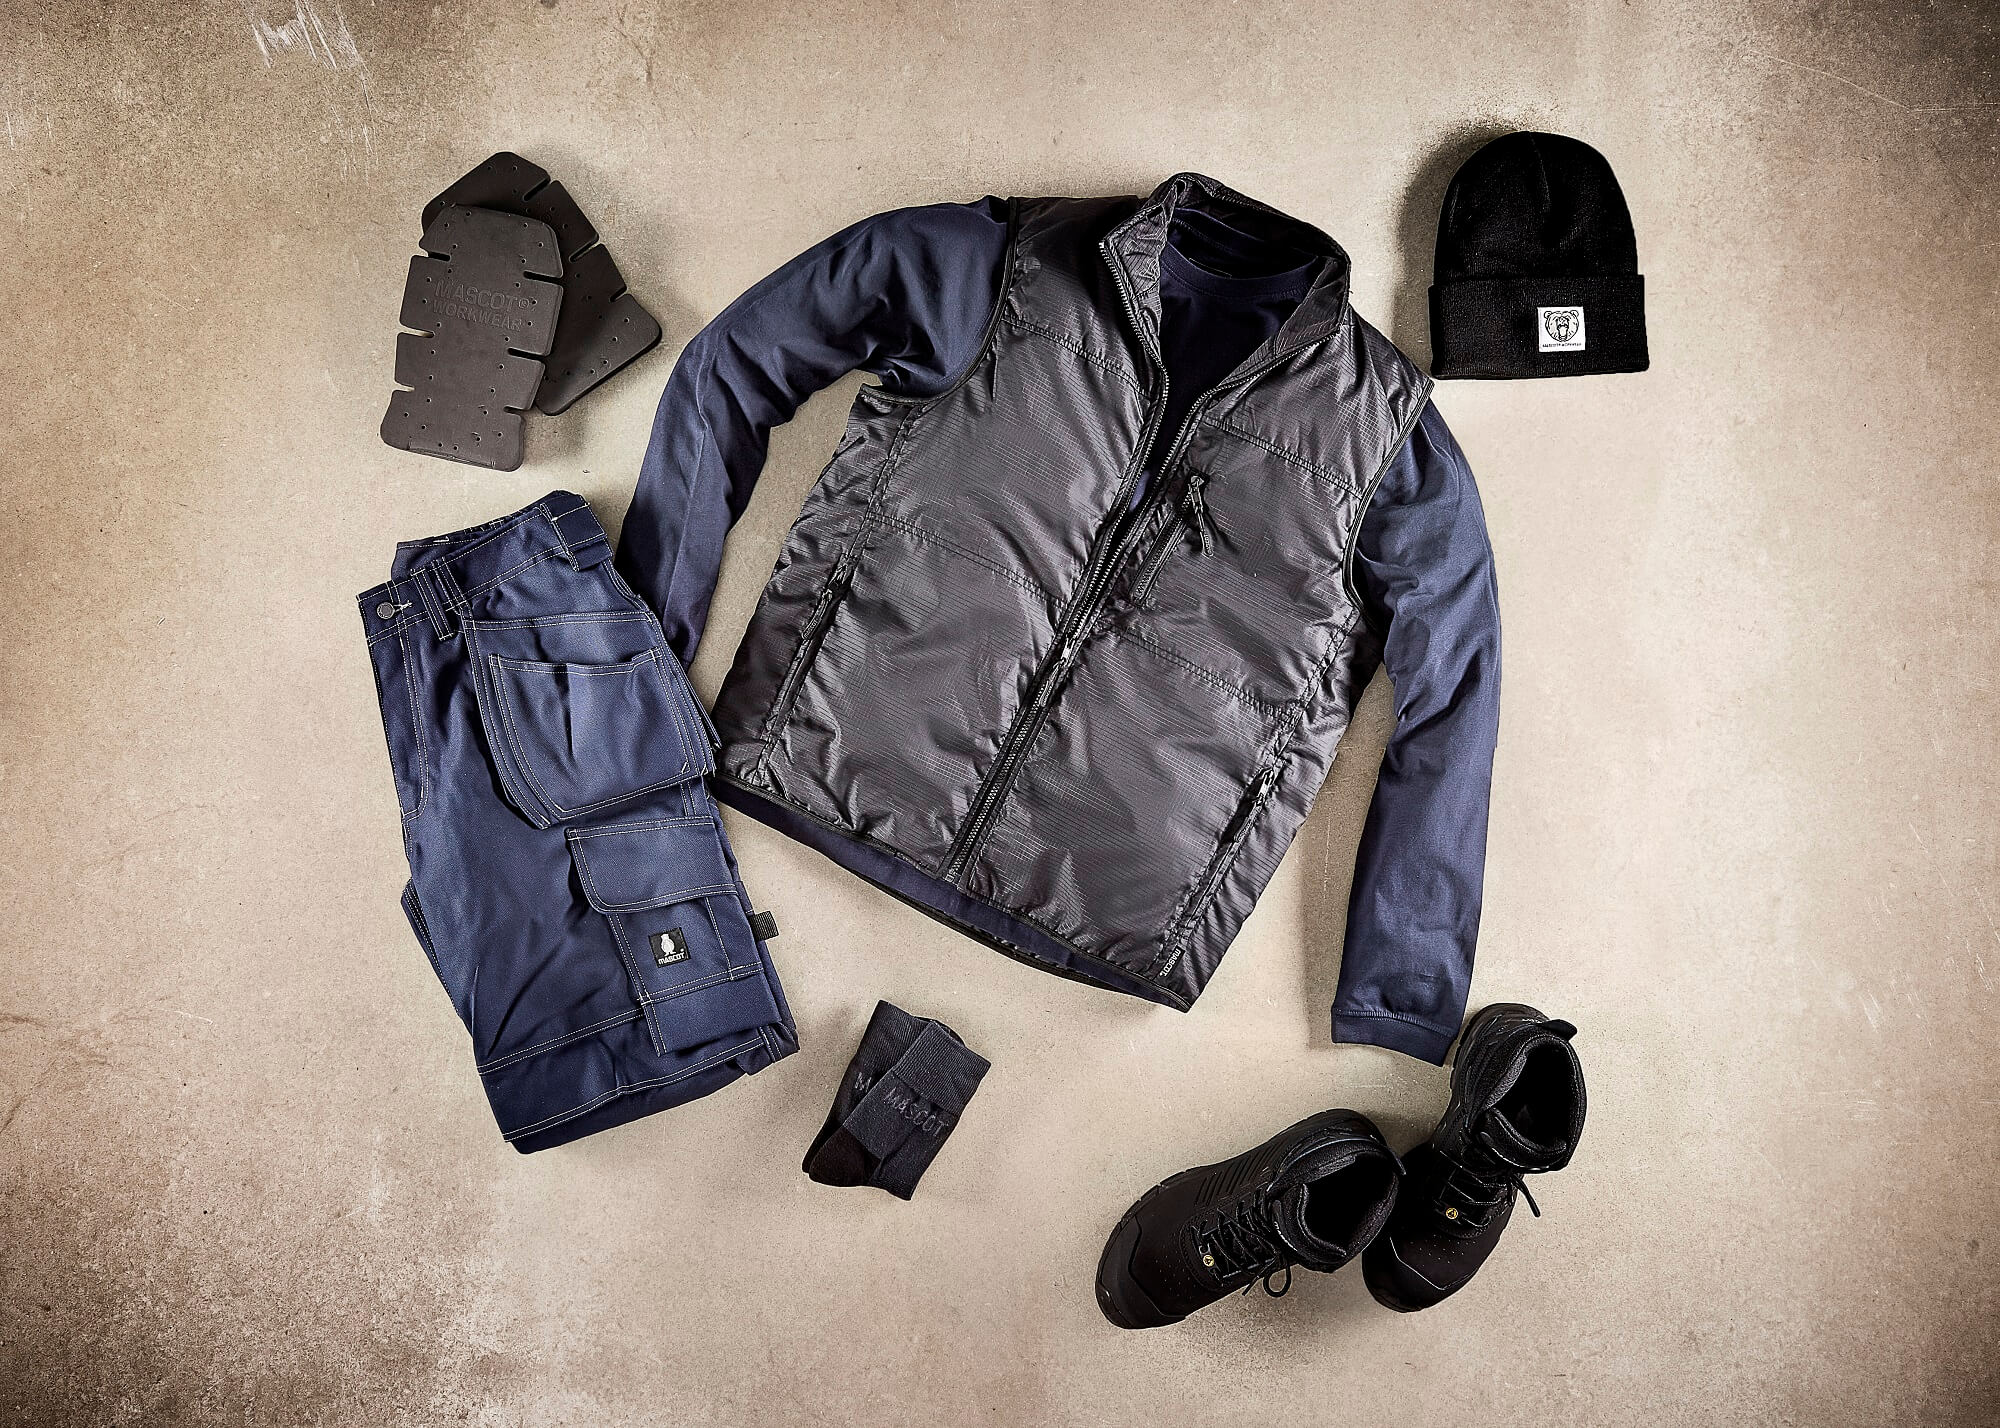 Work Gilet, Pants & Safety Boot - Collage - Navy